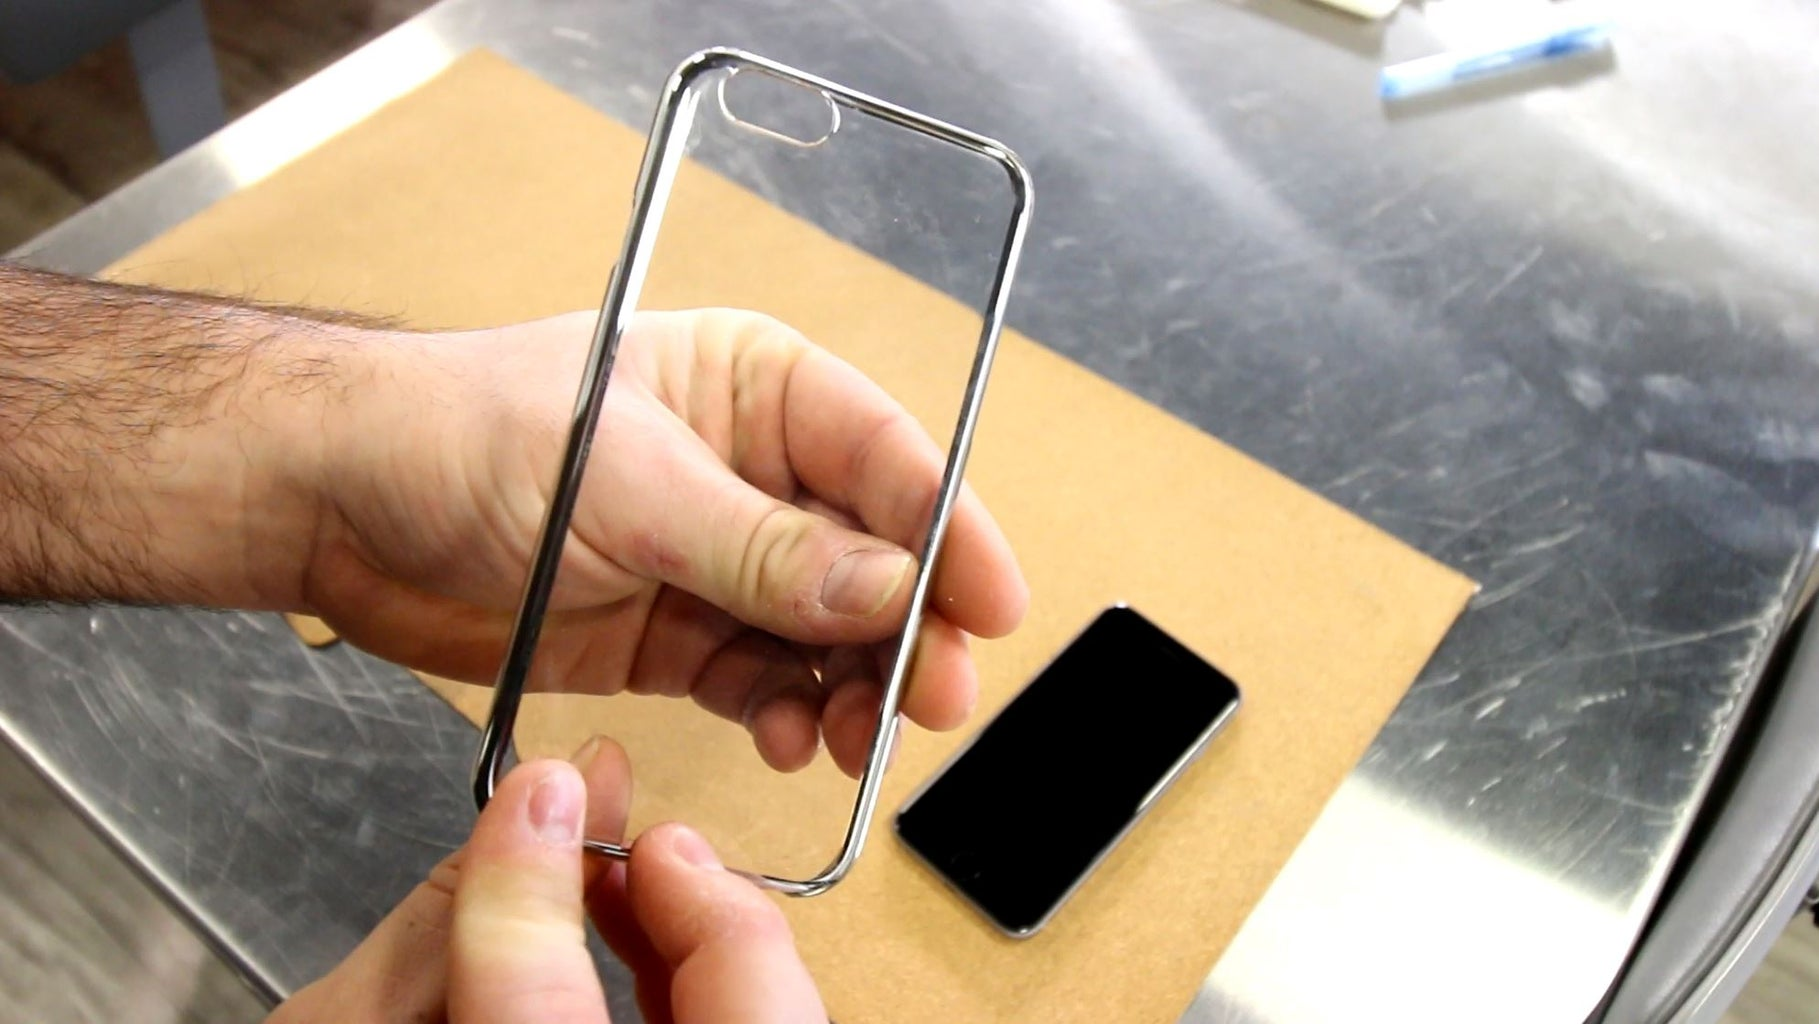 Assembly - (1) Clear Case